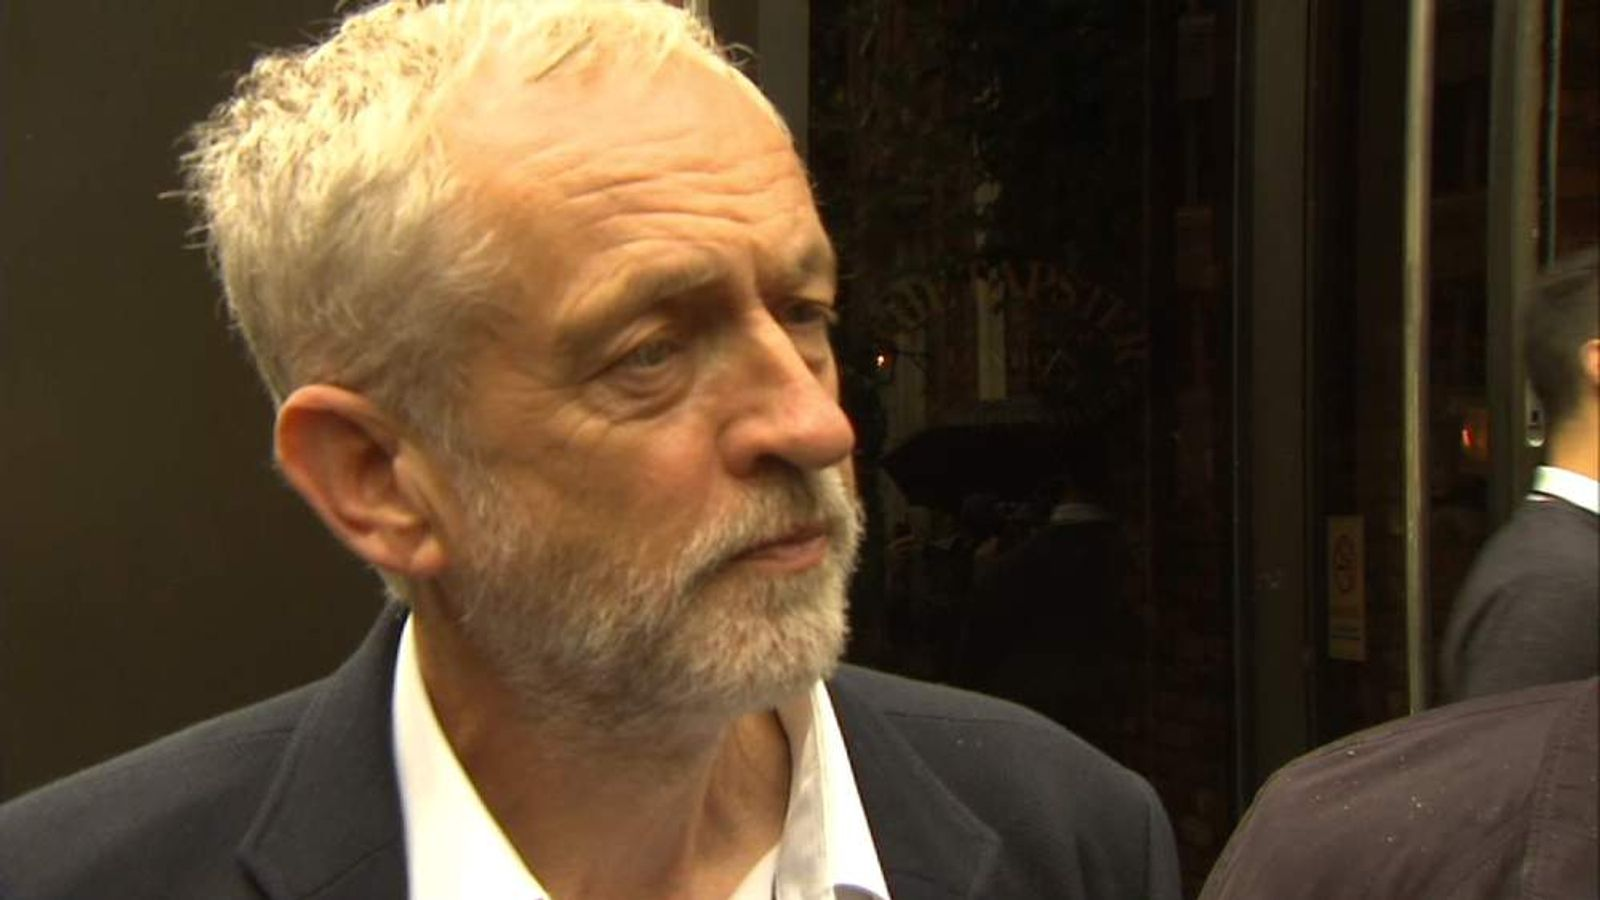 Jeremy Corbyn answers questions after appointing his shadow cabinet